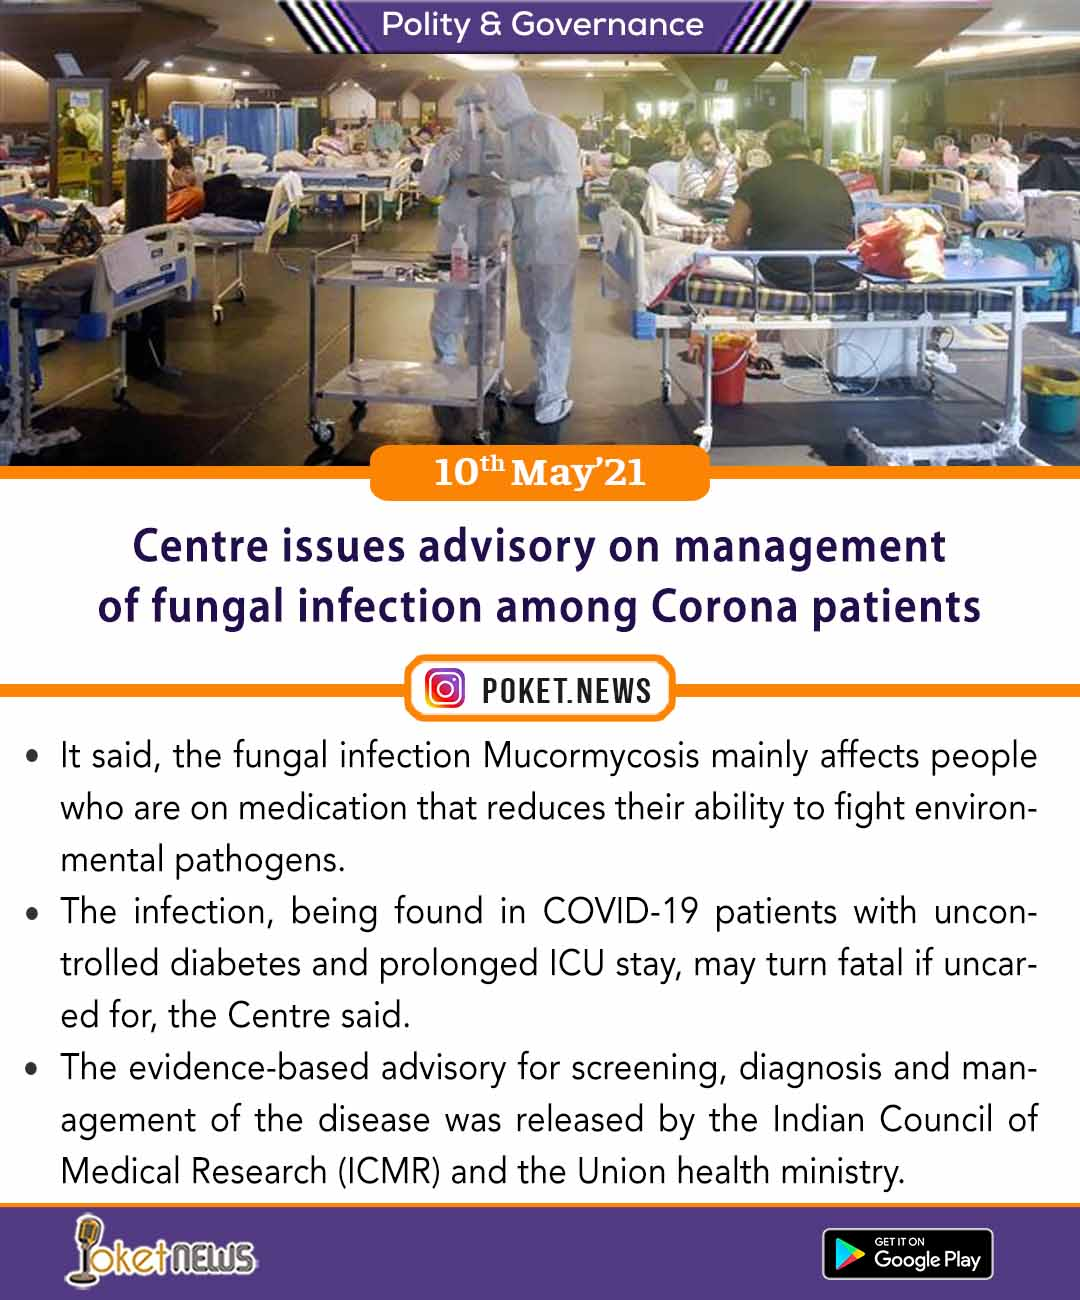 Centre issues advisory on management of fungal infection among Corona patients